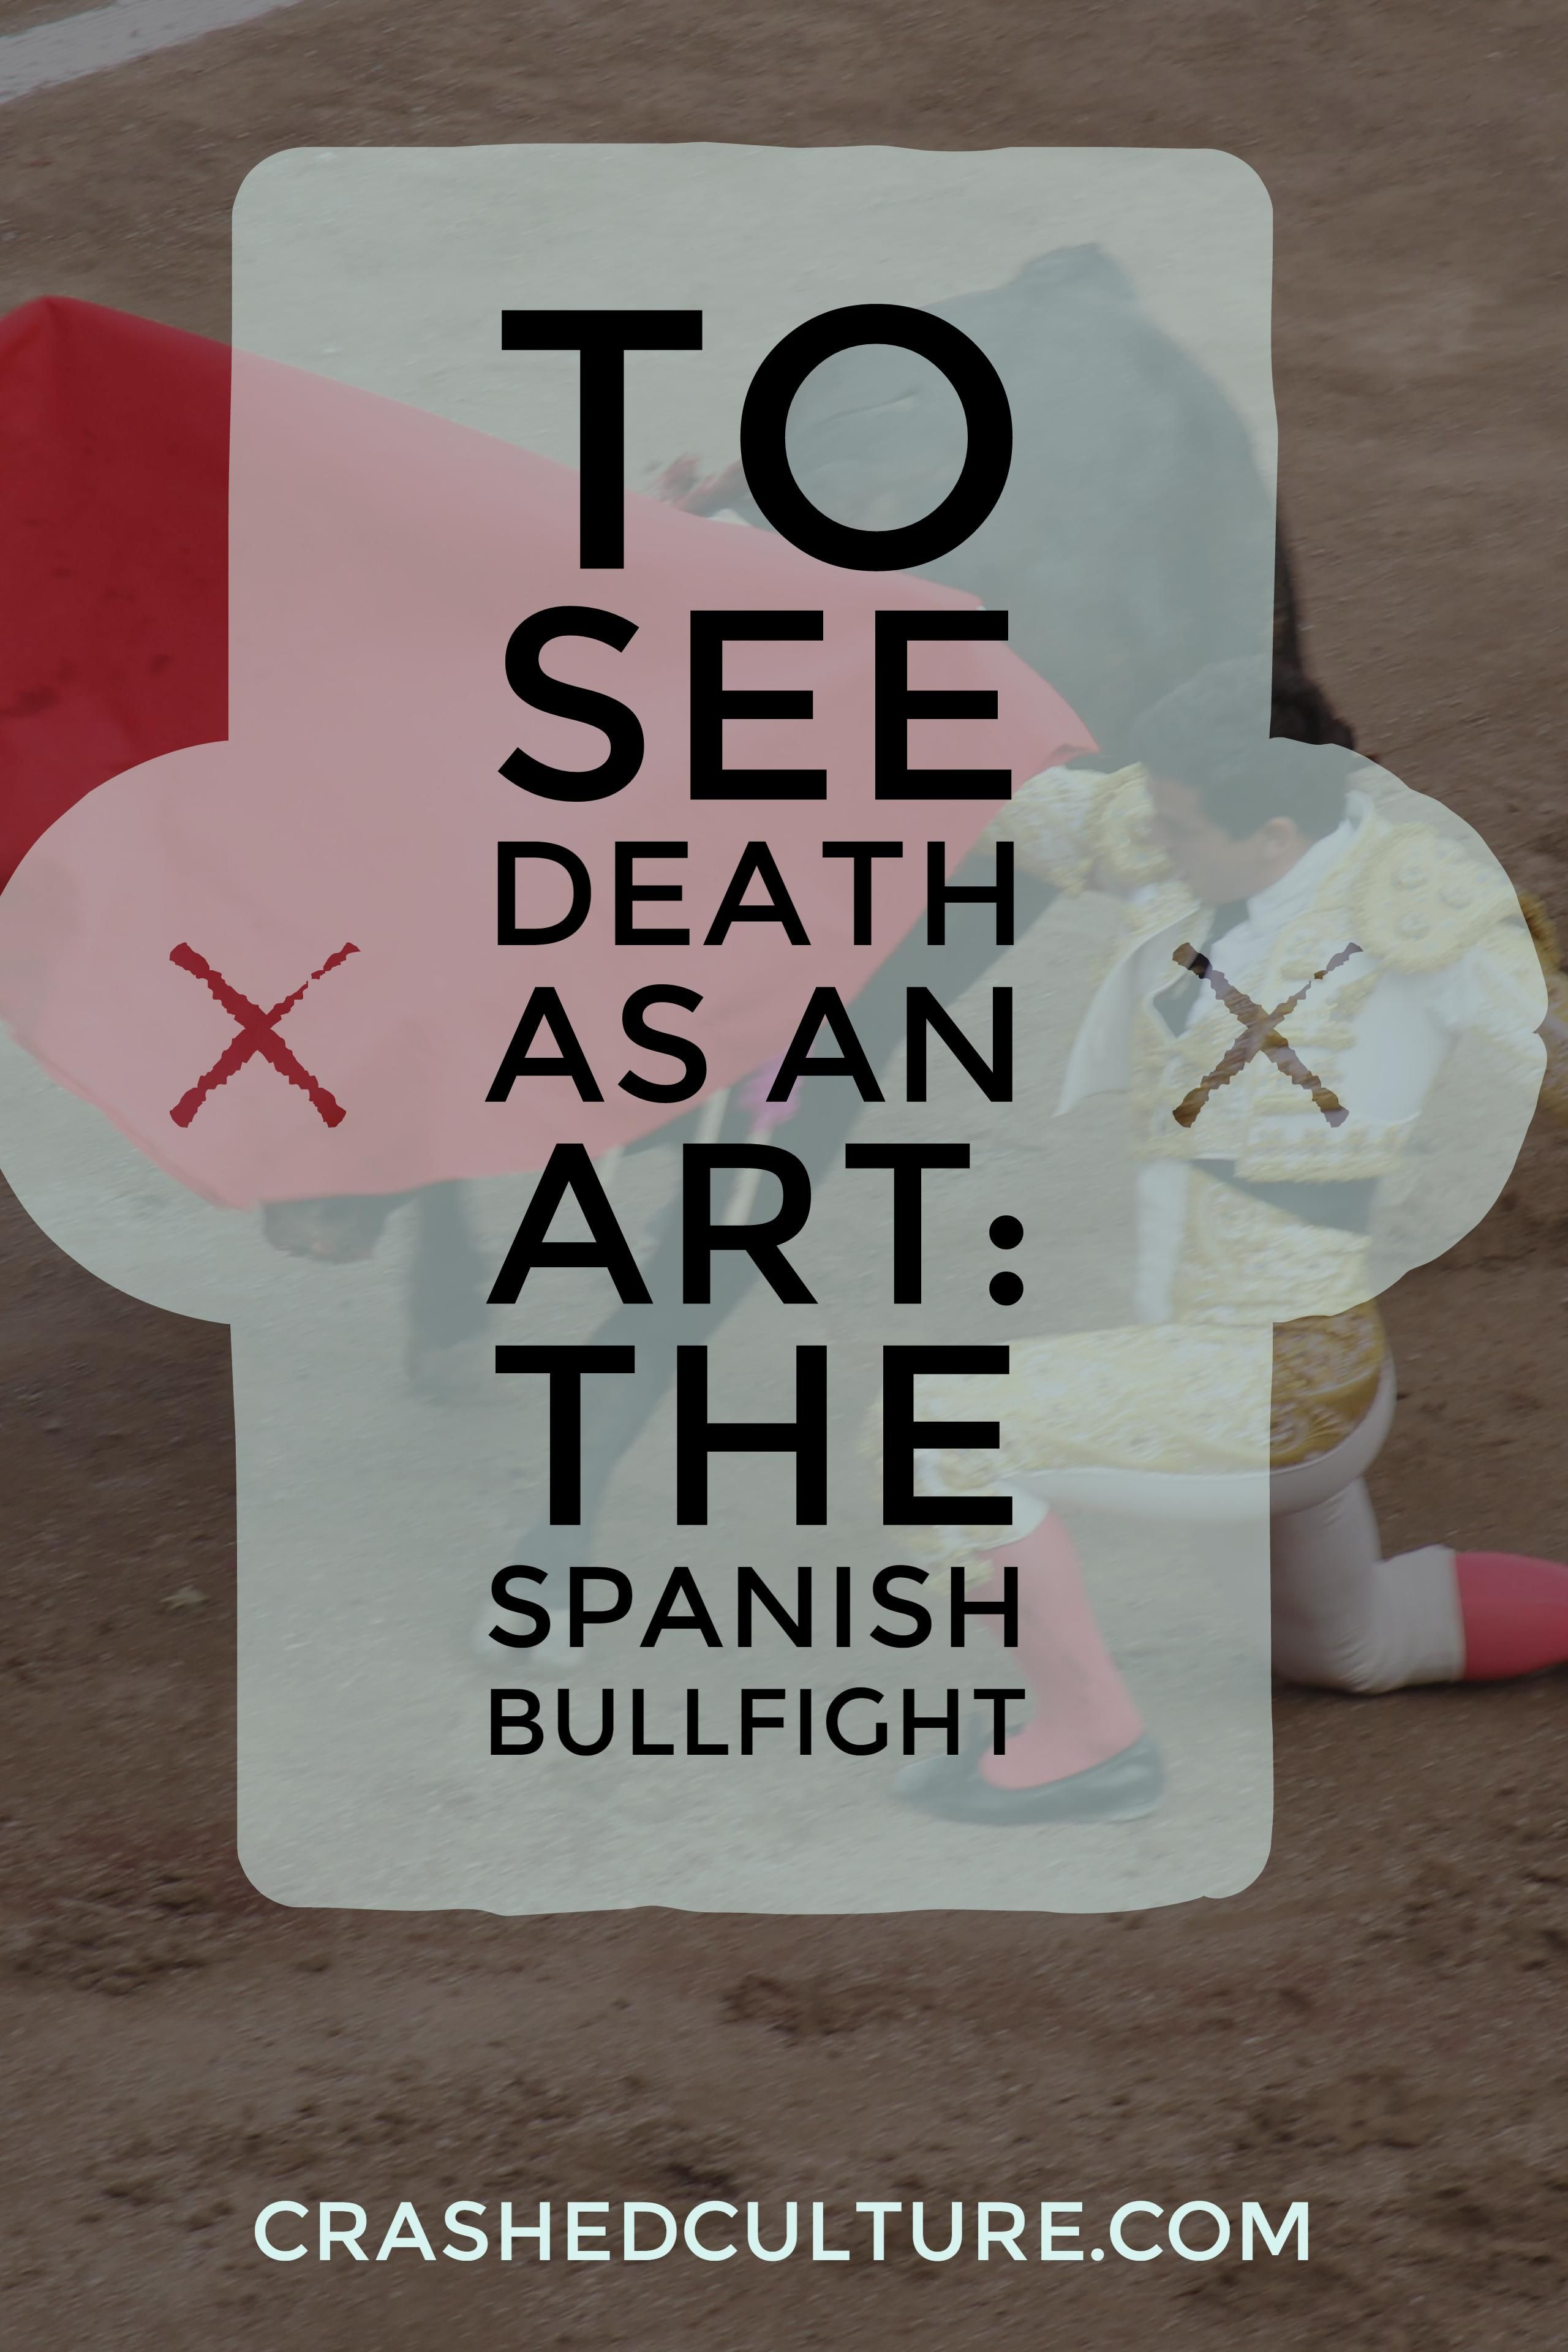 The Spanish bullfight is a heated topic, and to understand it we must understand…